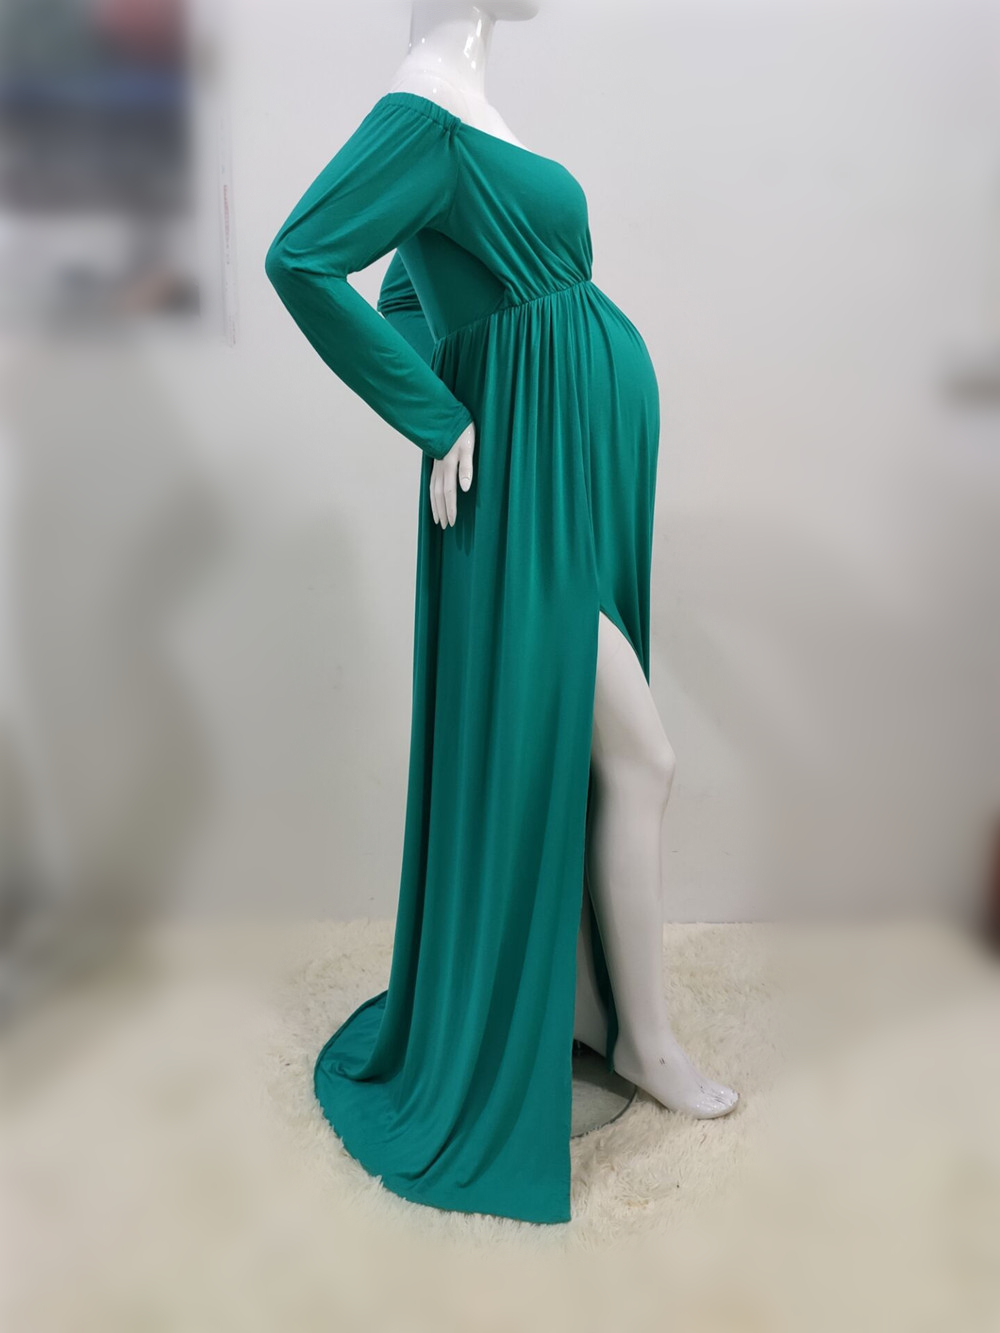 Long Shoulderless Maternity Photography Props Dresses Sexy Split Front Pregnancy Dress Photo Shoot For Pregnant Women Maxi Gown (8)